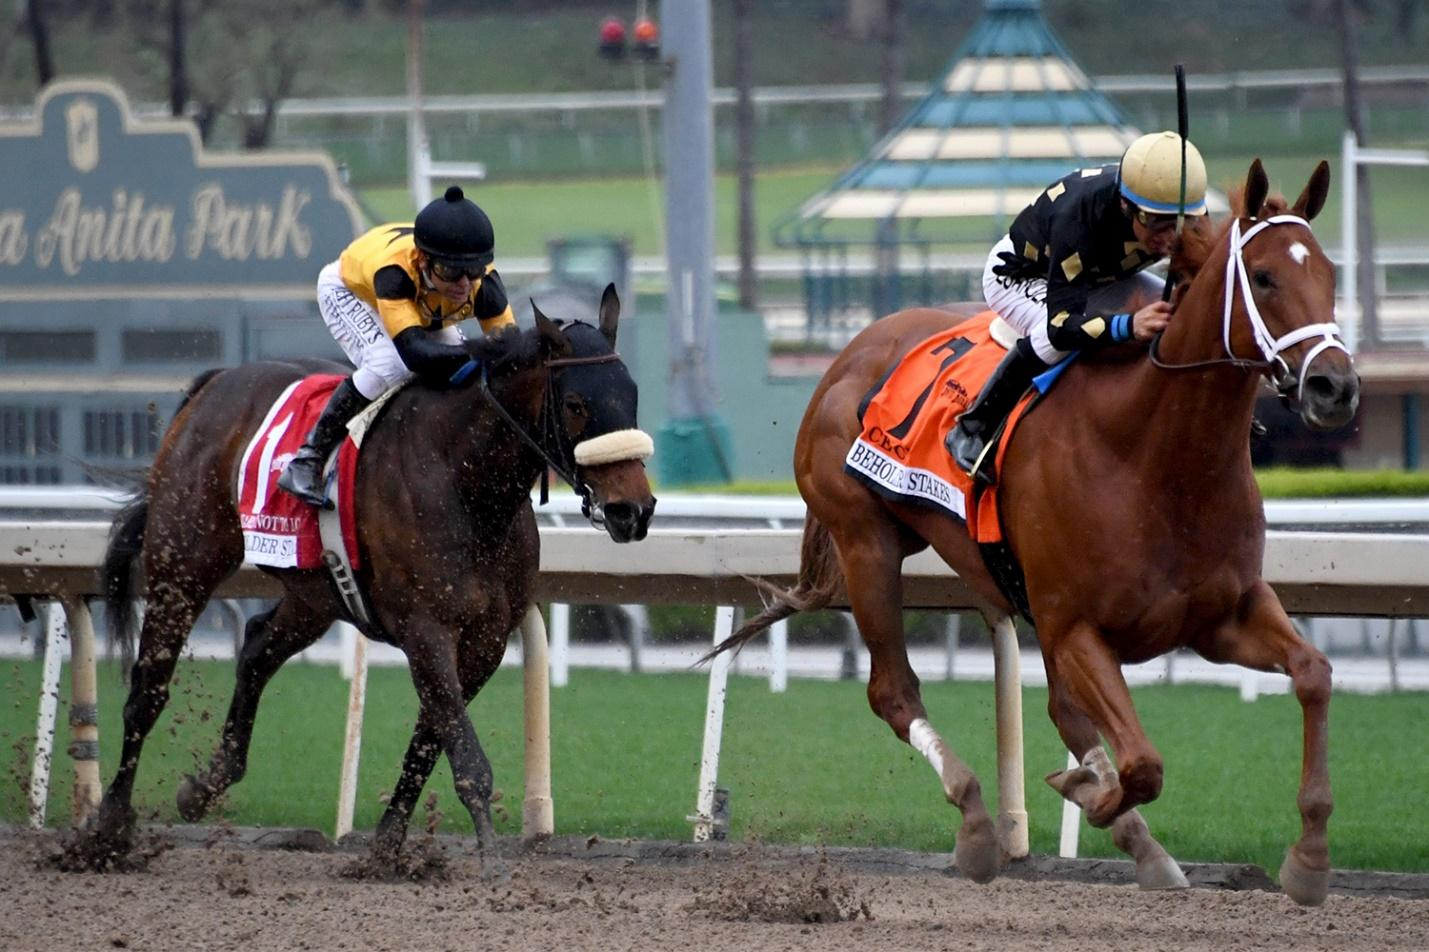 Horse Racing Is One of the Last Sports Still Standing in US ...